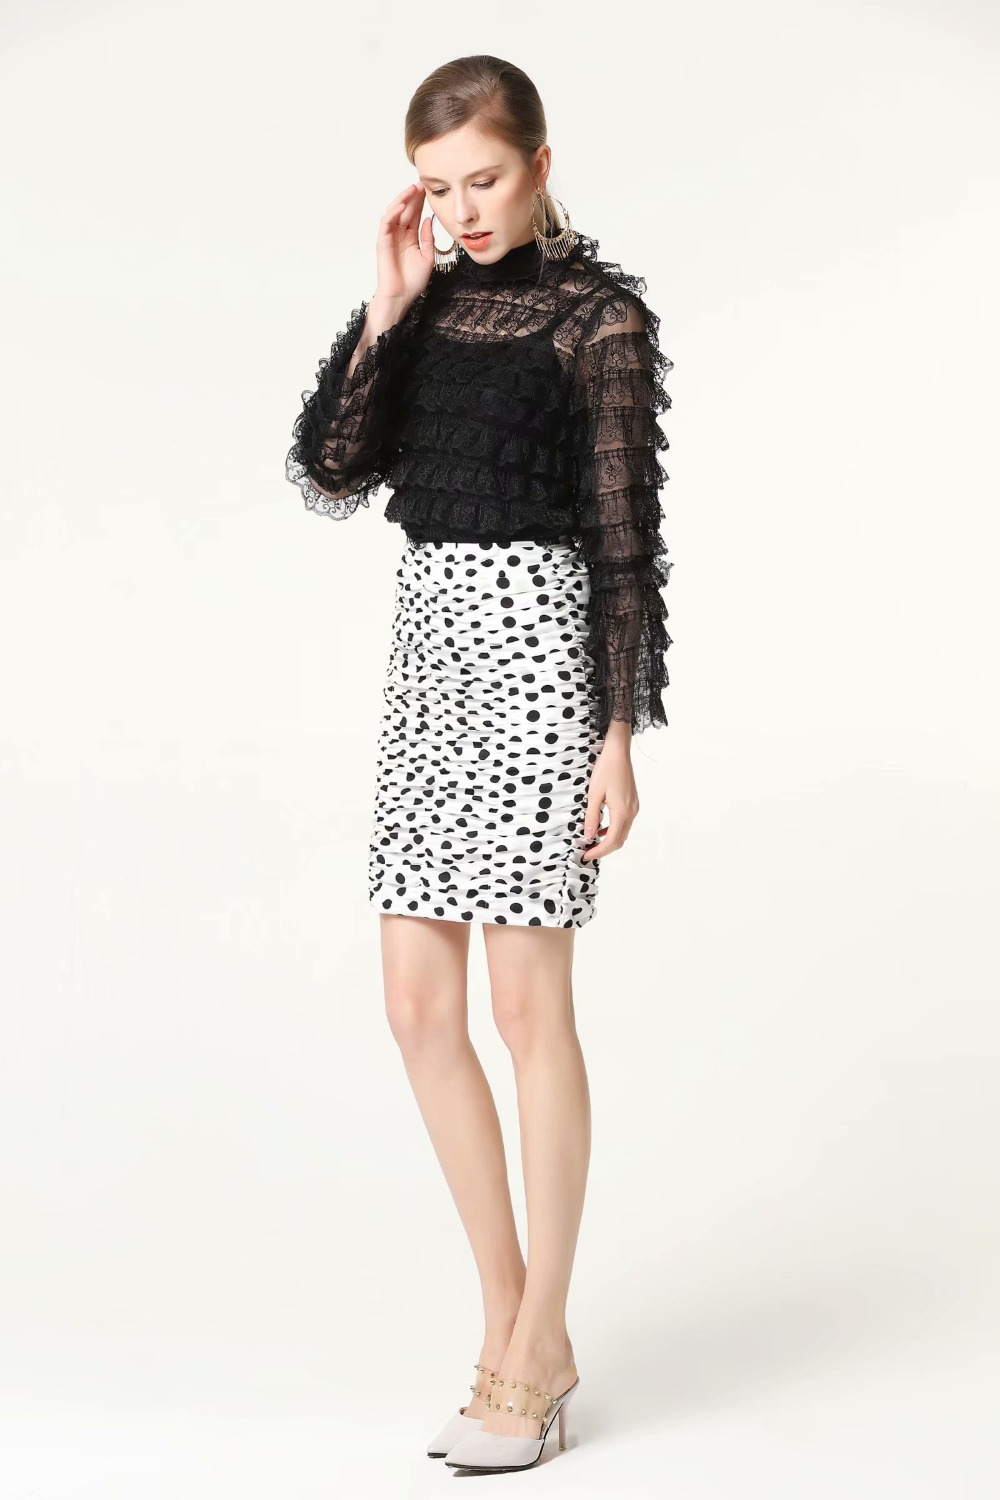 Occident Runway Autumn Vintage Embroidered Lace Blouse Lace Skirt Skirt Suit 170503Z02